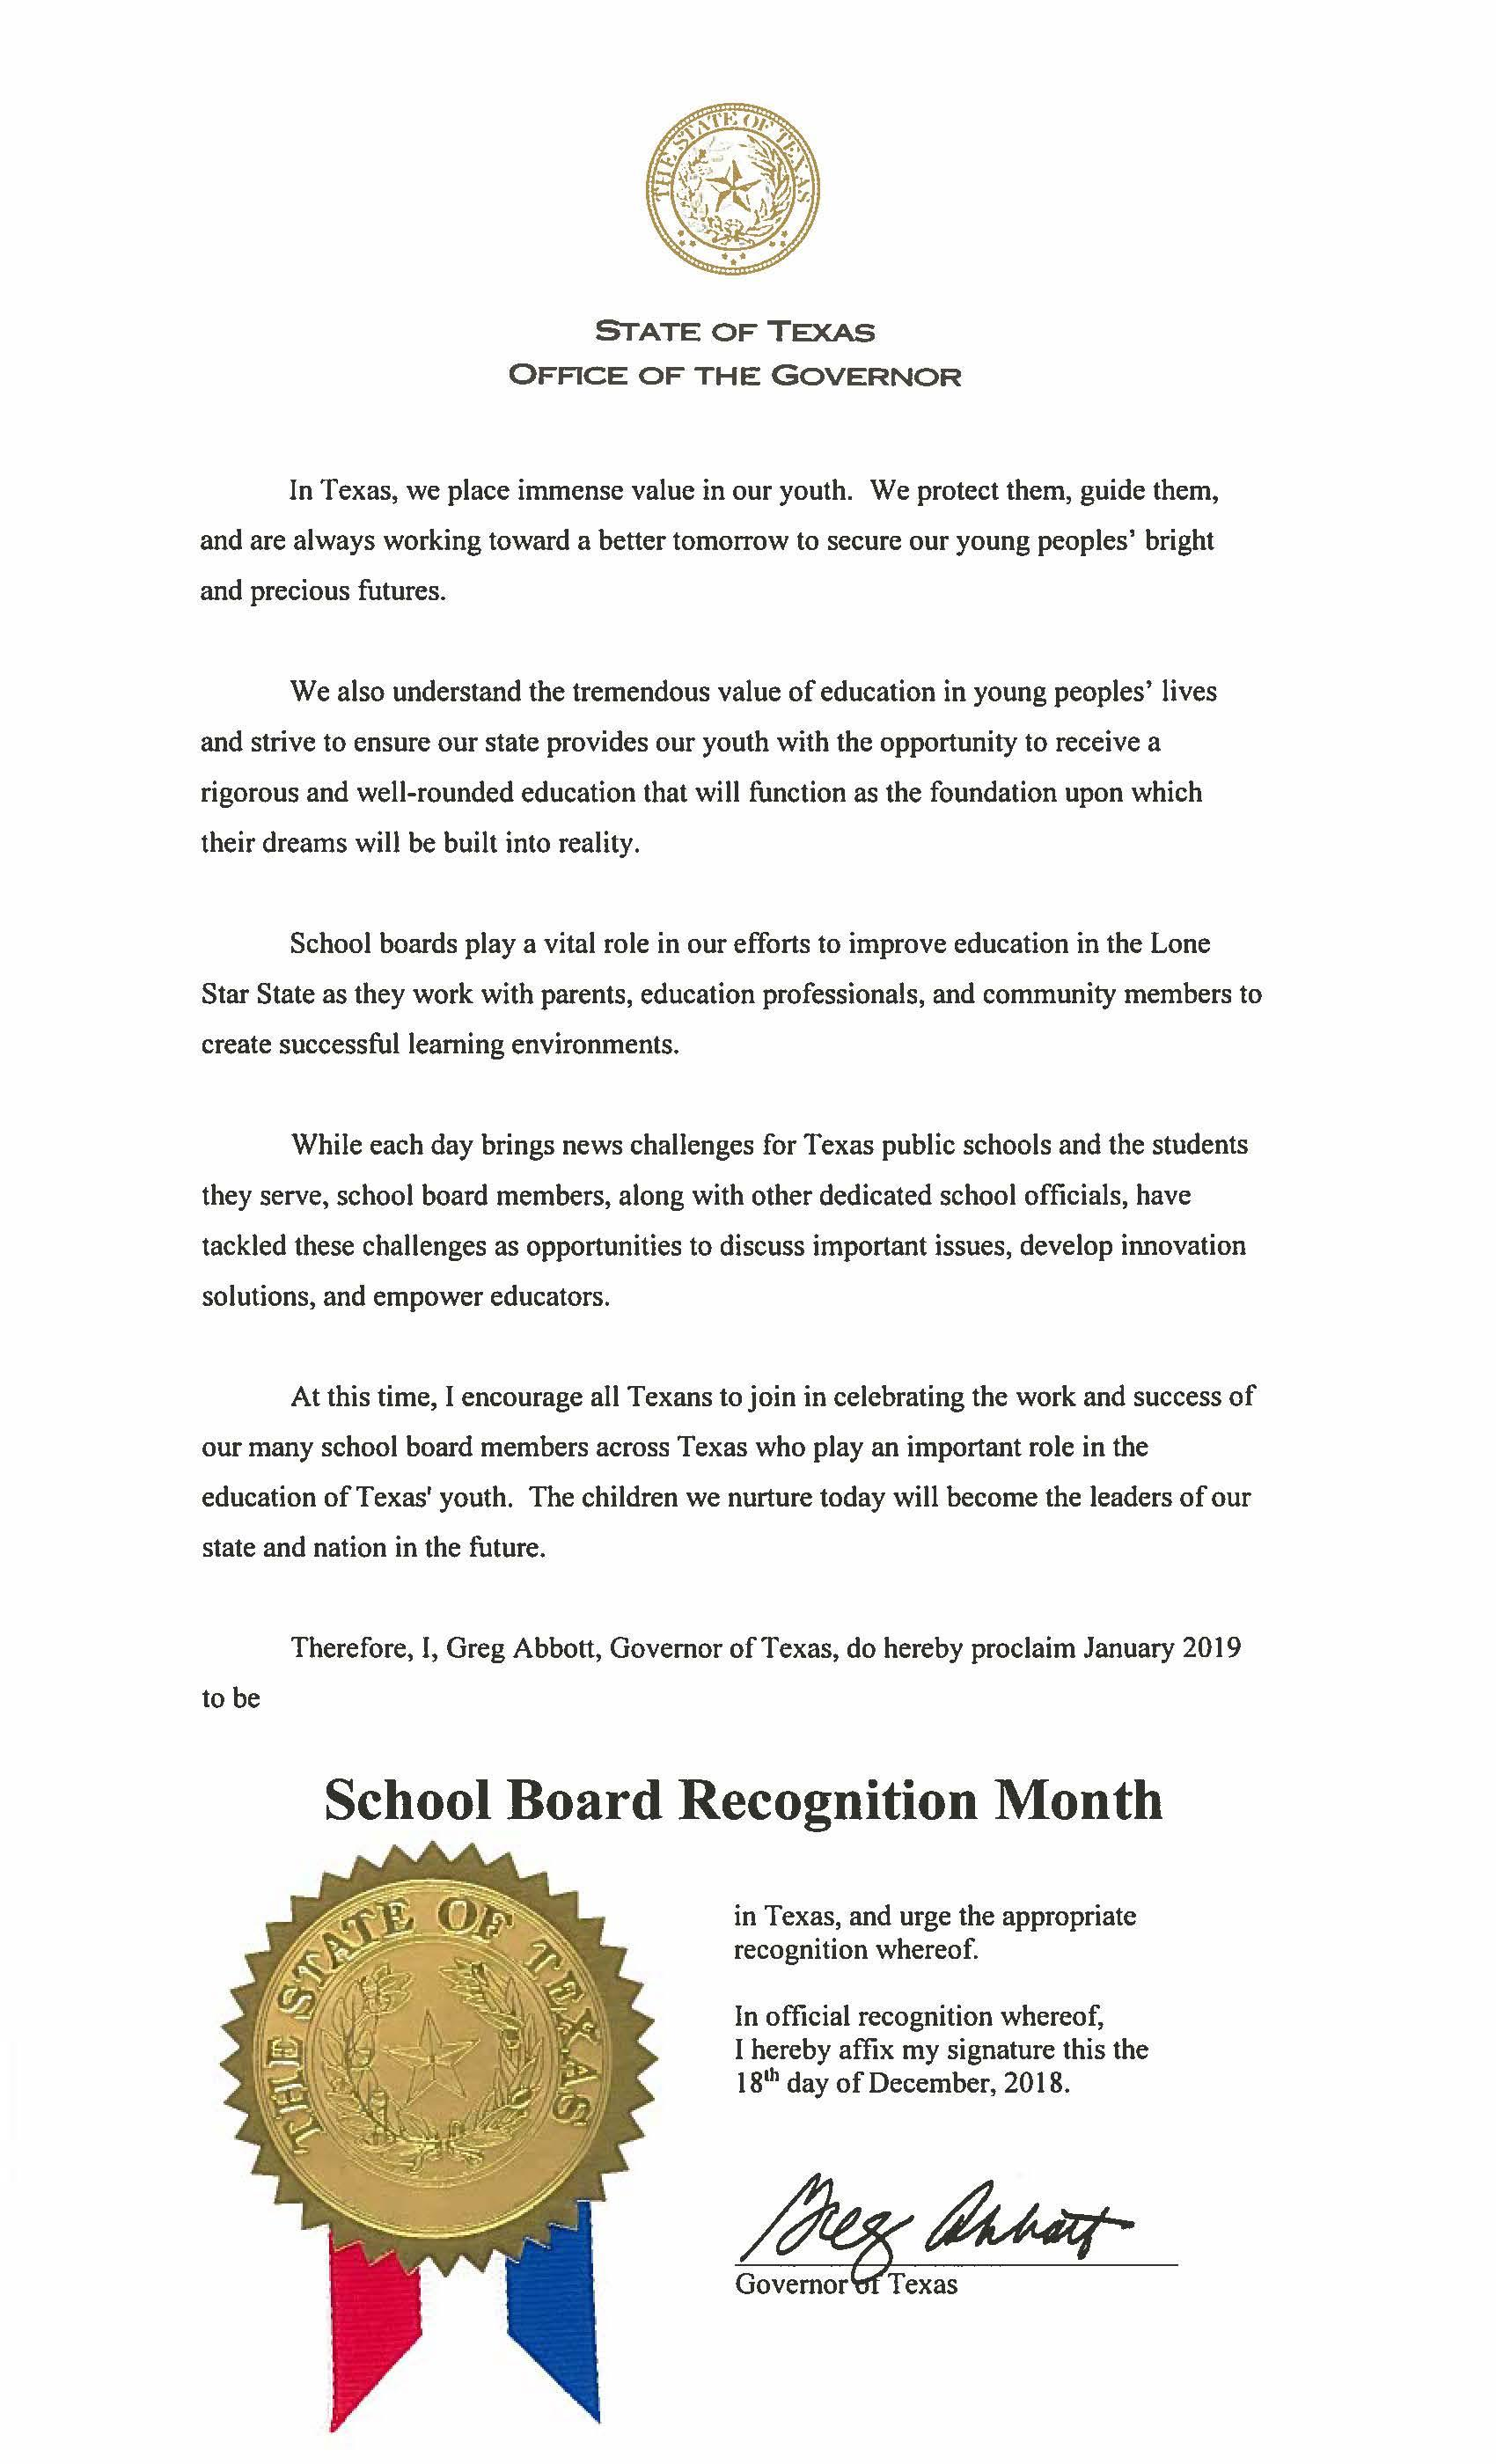 State of Texas Board Recognition